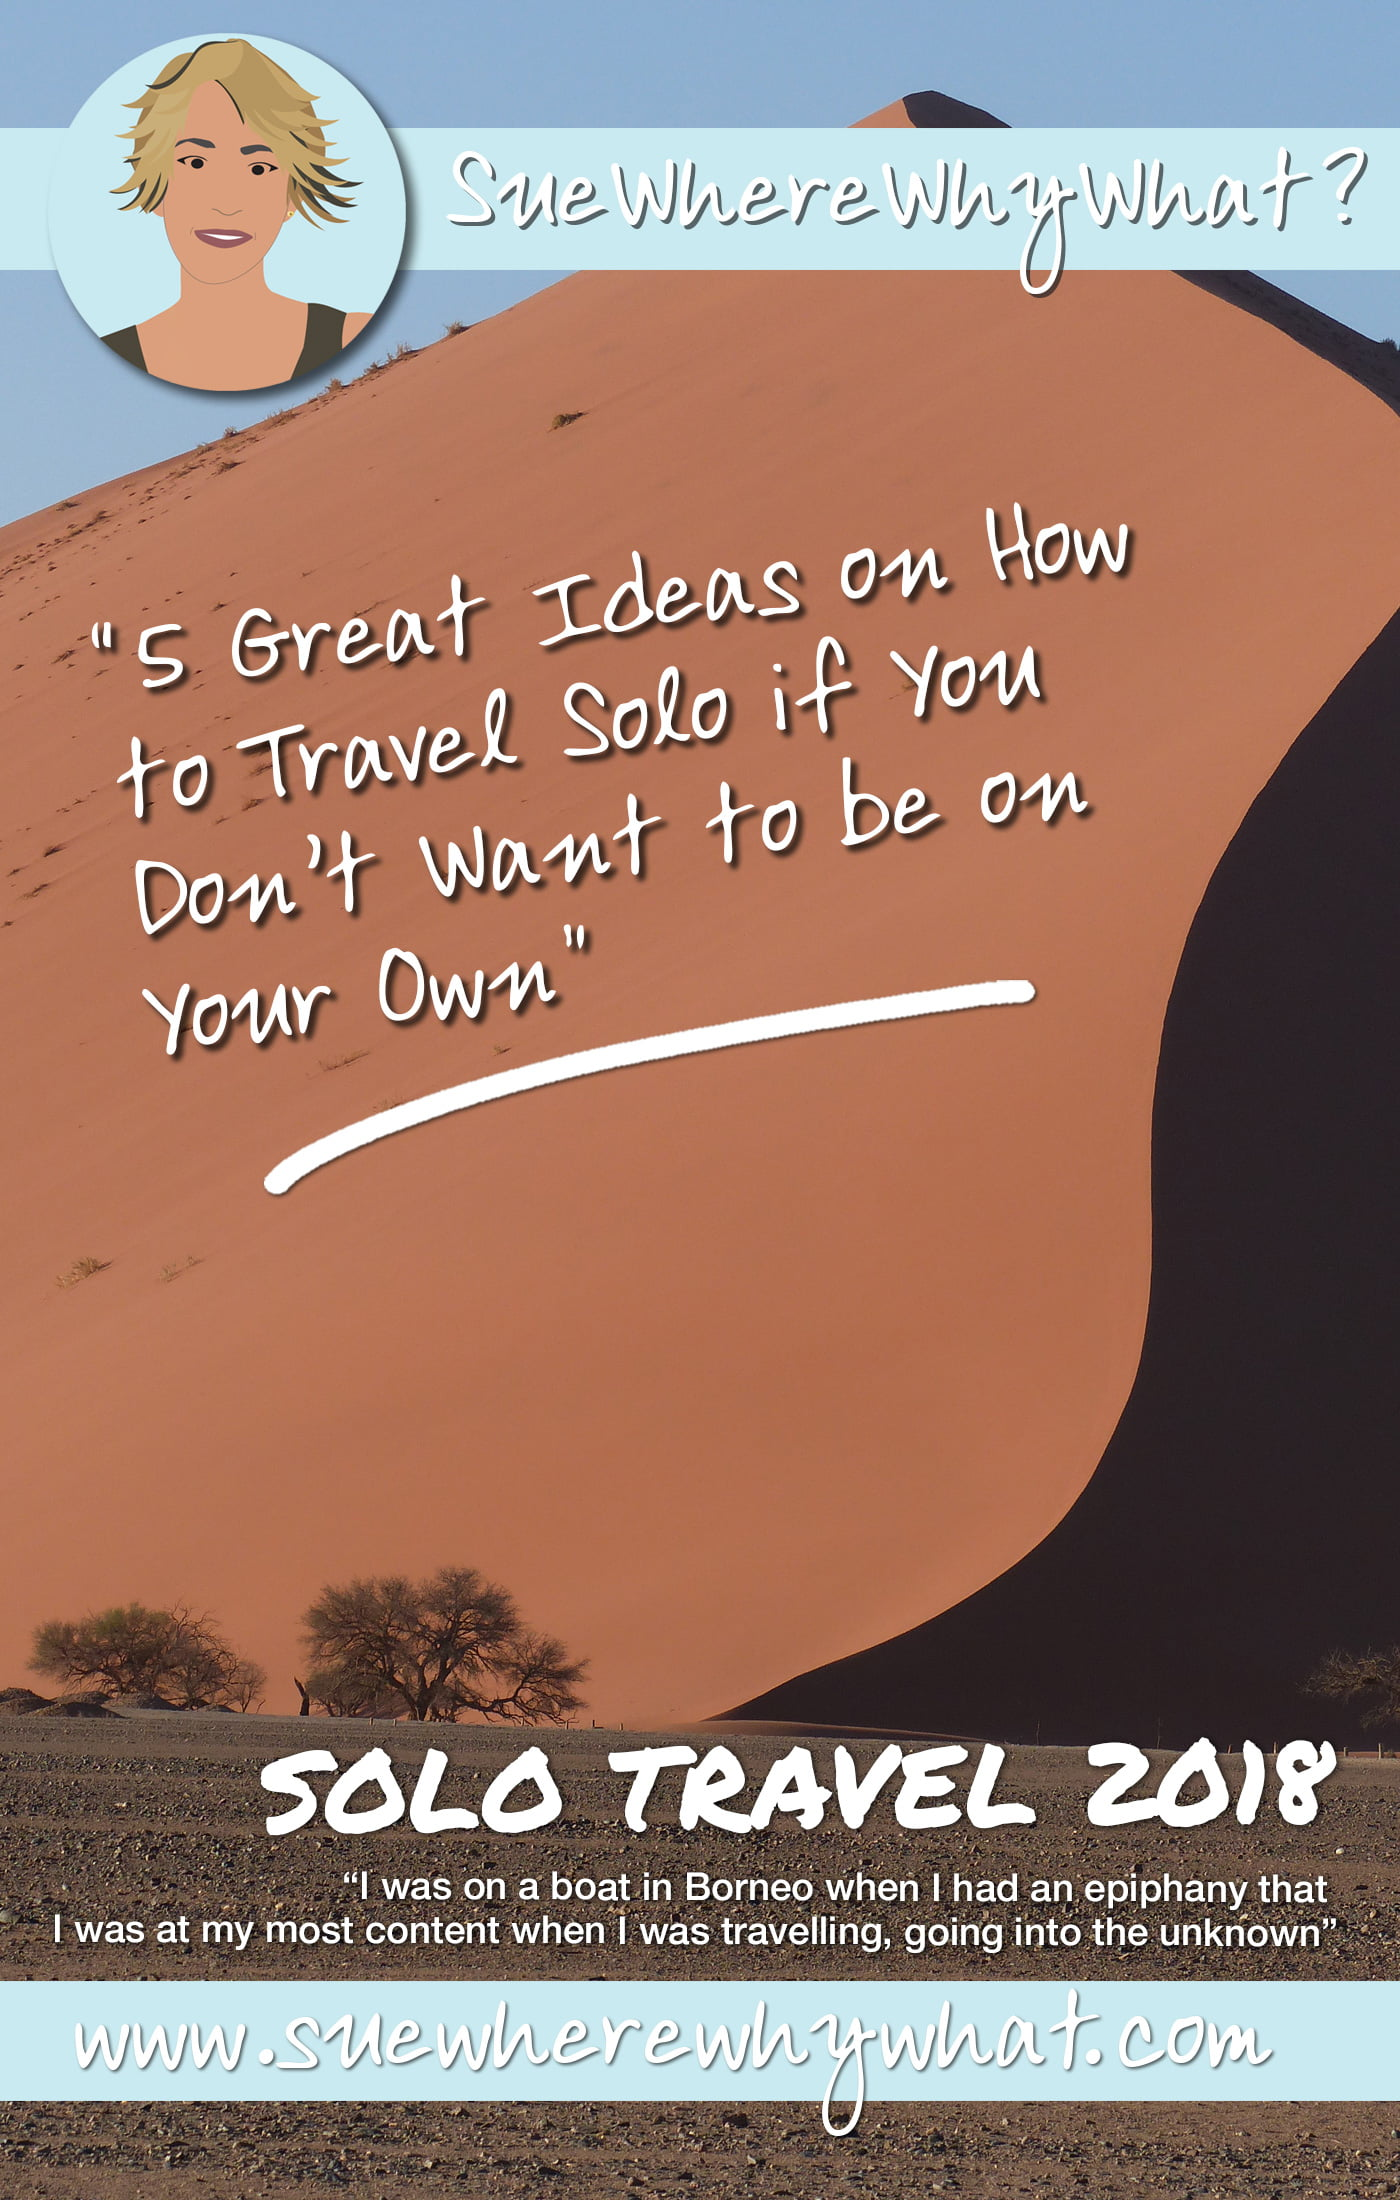 My top tips on Female Solo Travel after 25 years on the road. Includes top destinations & ideas if you are going solo but nervous for your first time. How to GO alone if you don\'t want to BE alone! https://www.suewherewhywhat.com/activities/5-great-ideas-on-how-to-travel-solo-if-you-dont-want-to-be-on-your-own